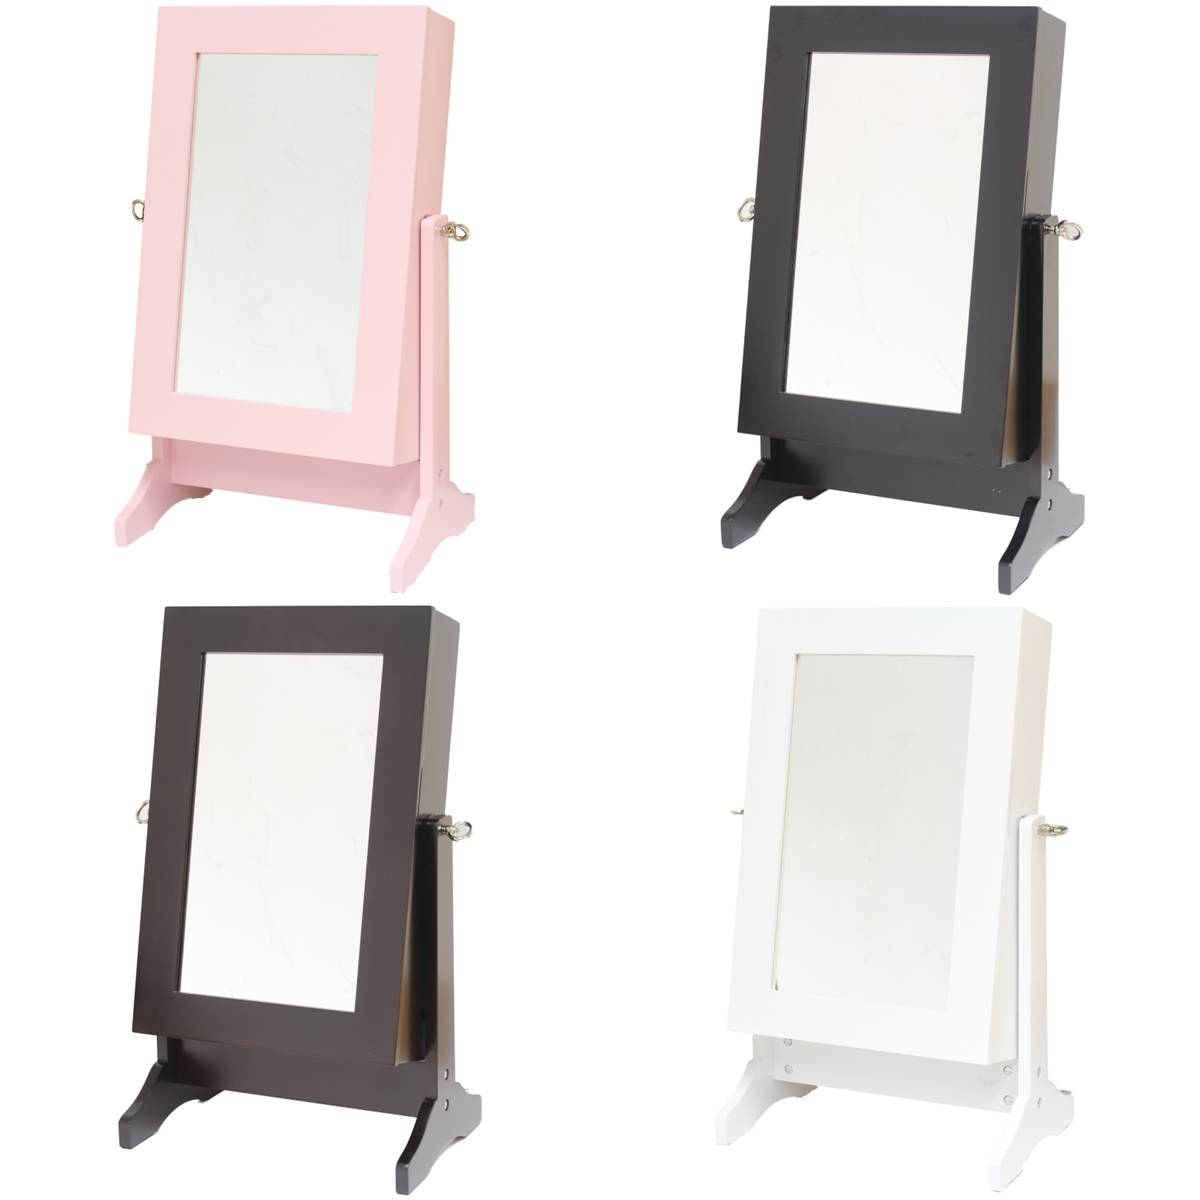 best 15 of mirrors on stand for dressing table. Black Bedroom Furniture Sets. Home Design Ideas